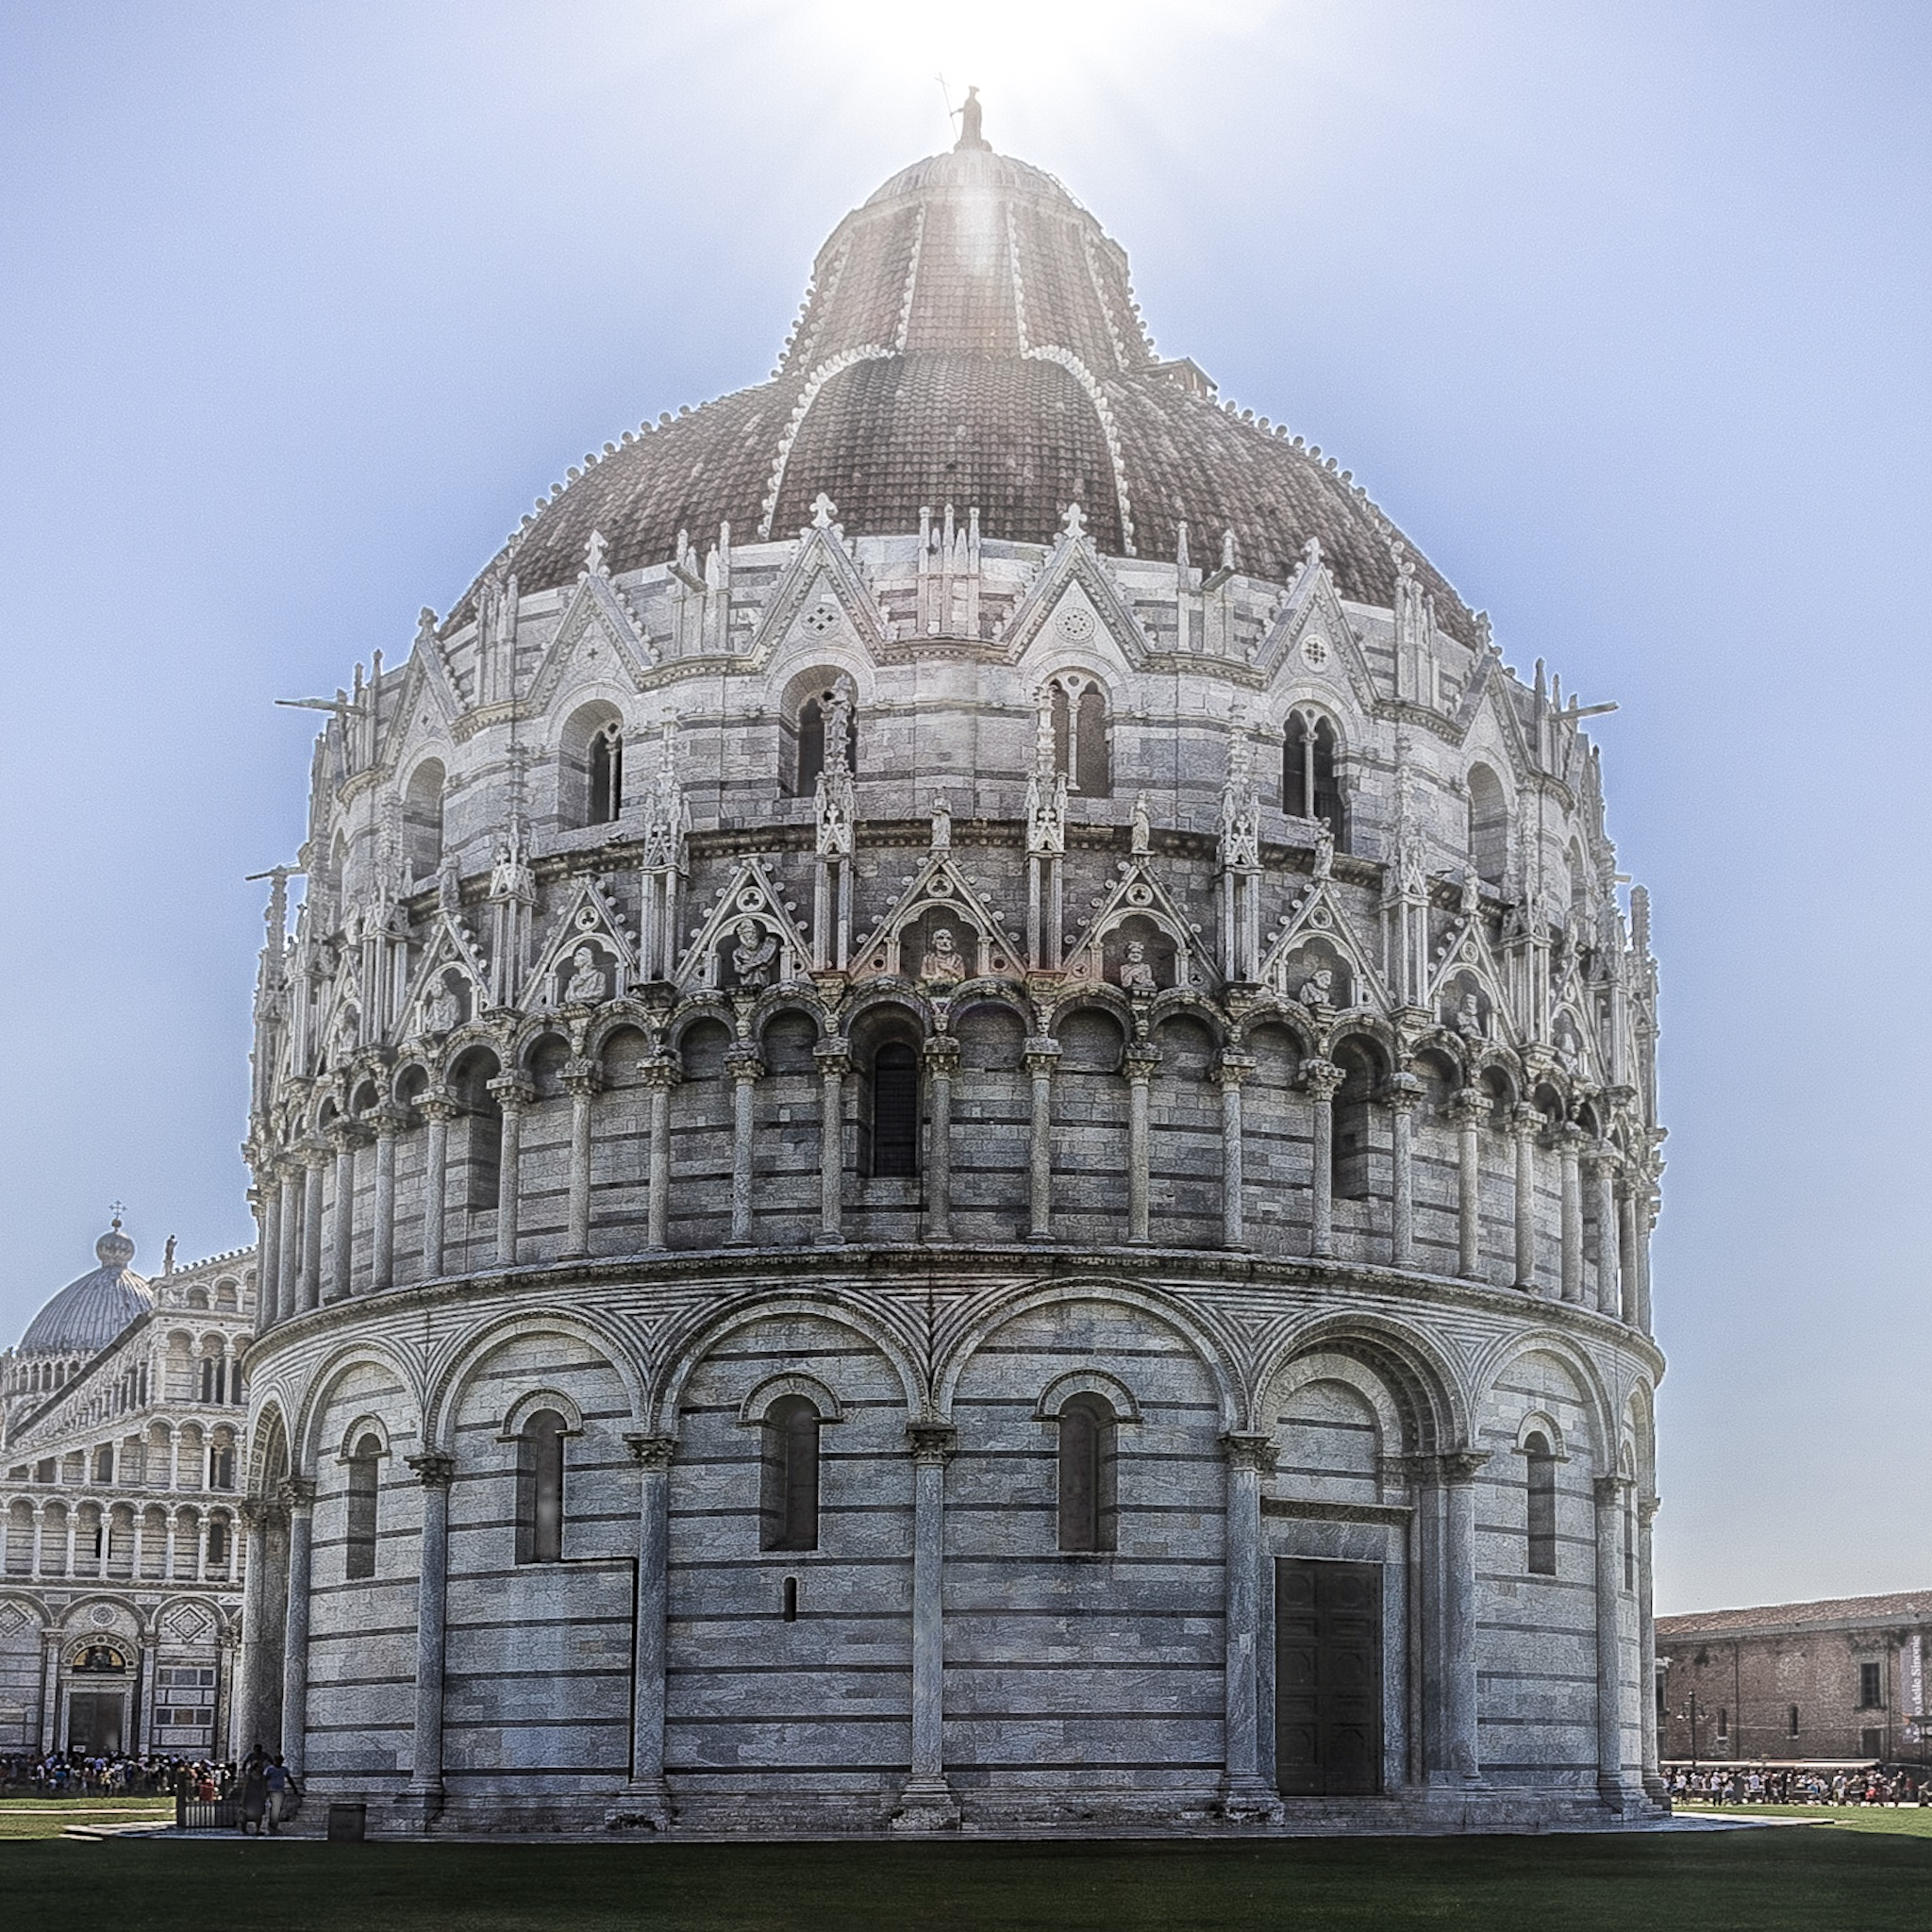 Crop of the Picture of the Battistero di San Giovanni In Pisa by Rick McEvoy Architectural Photographer